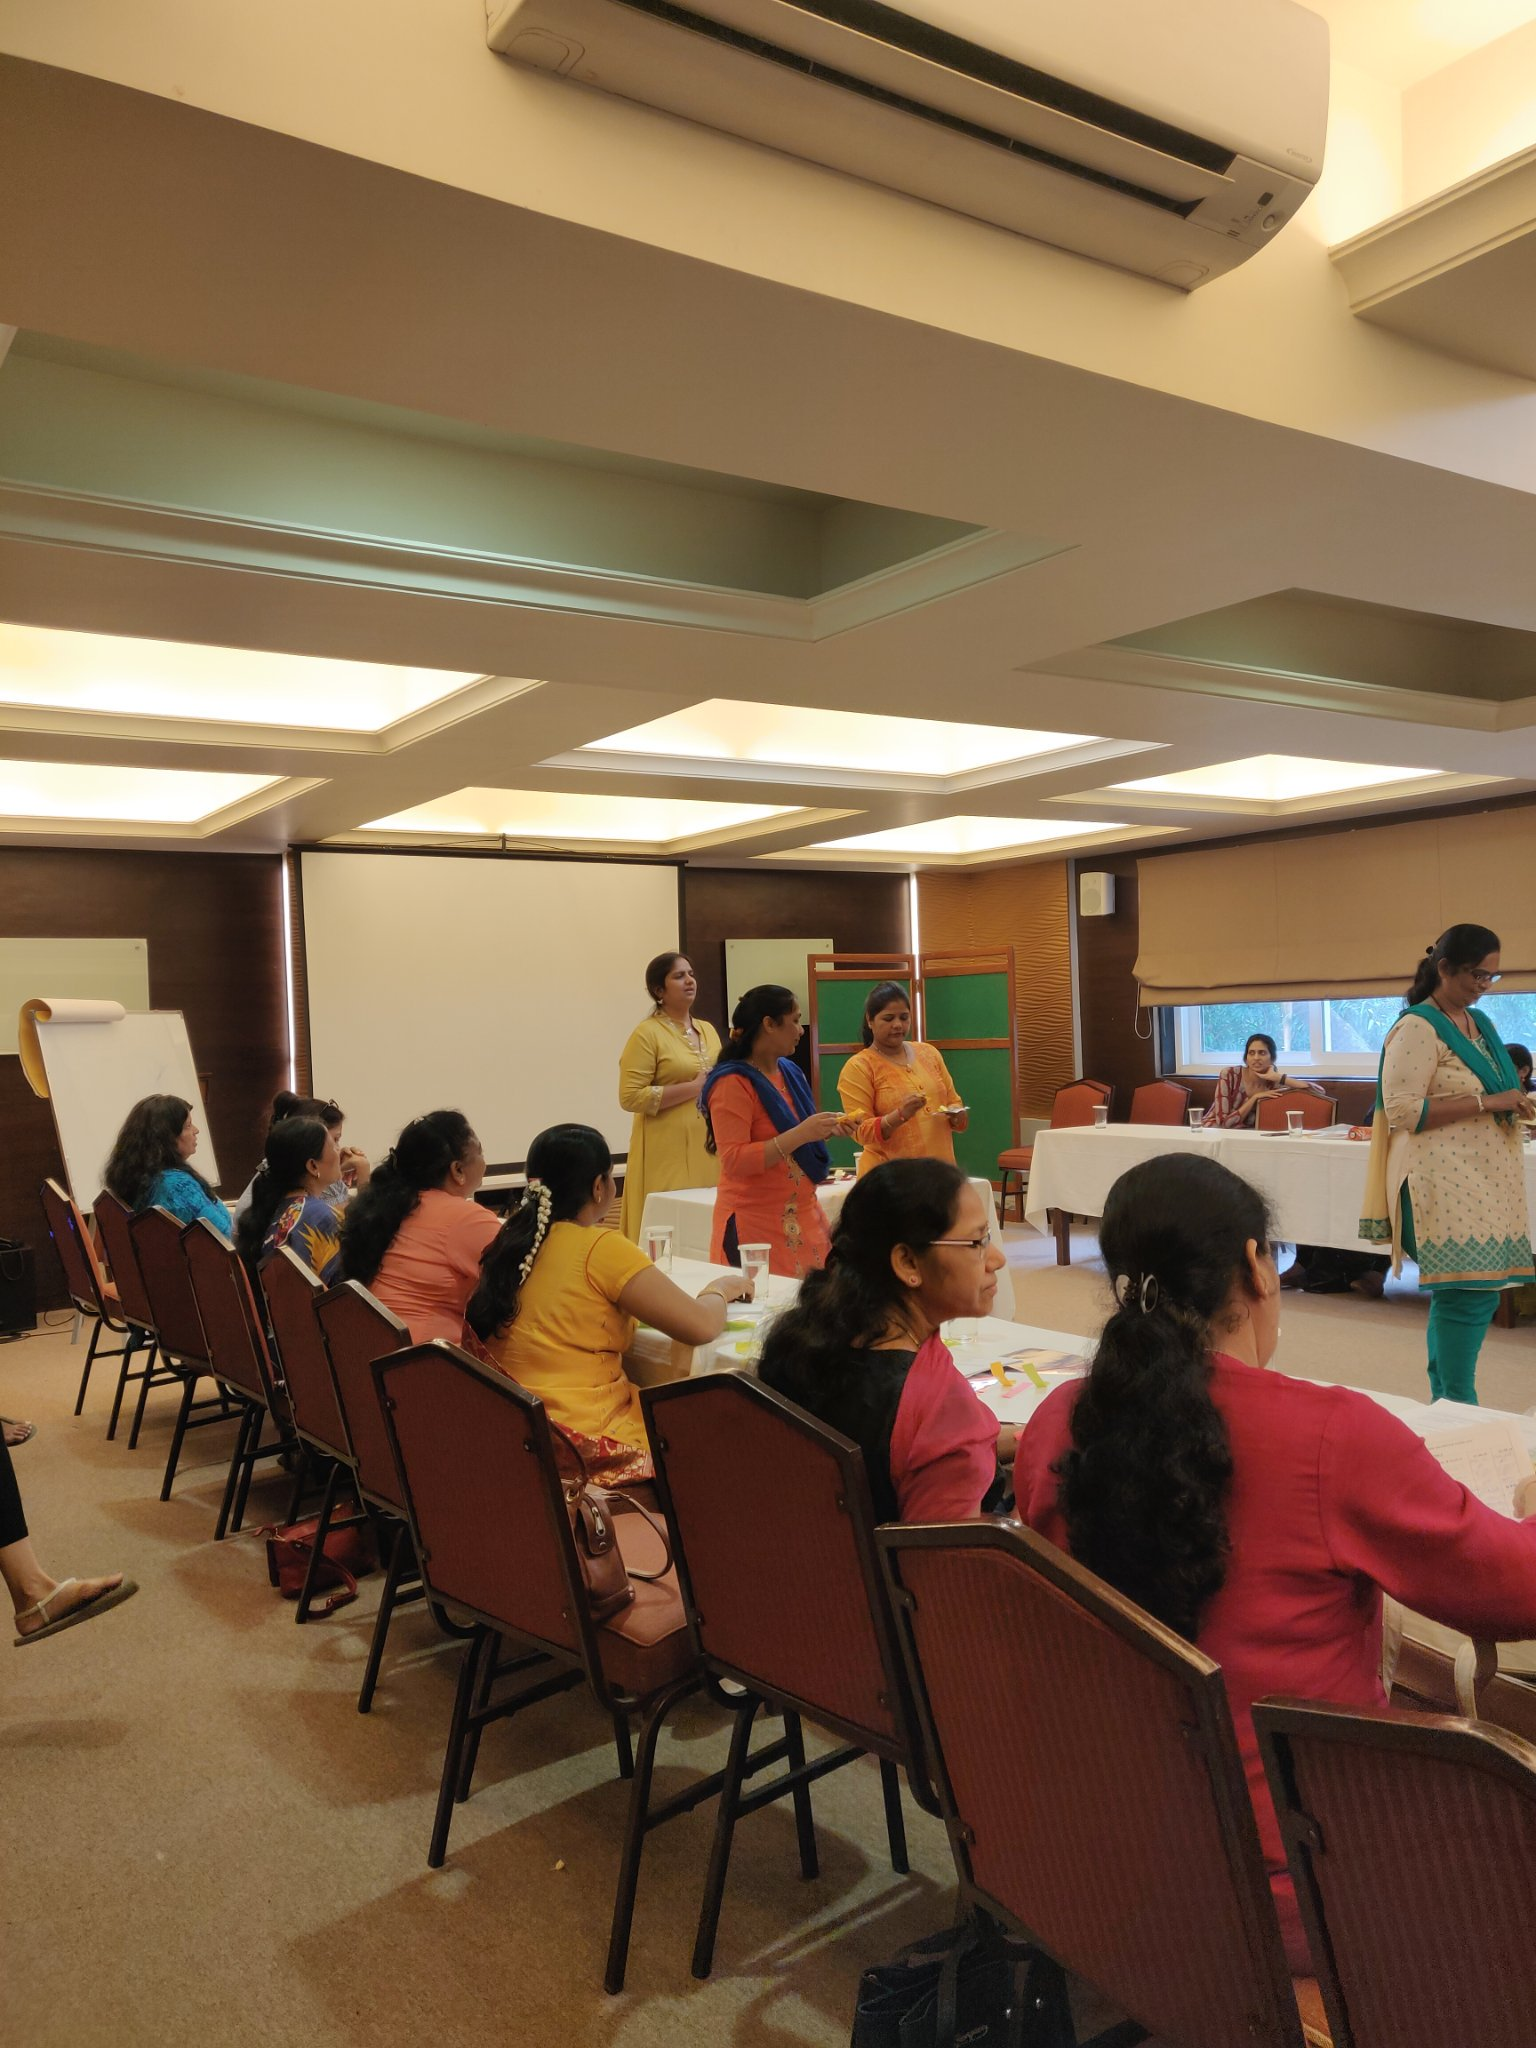 training for BMC workers at YMCA, organised by CEHAT- participants sitting in the room around a U-shaped table. Nidhi goyal standing in the center conducting an activity with three participants